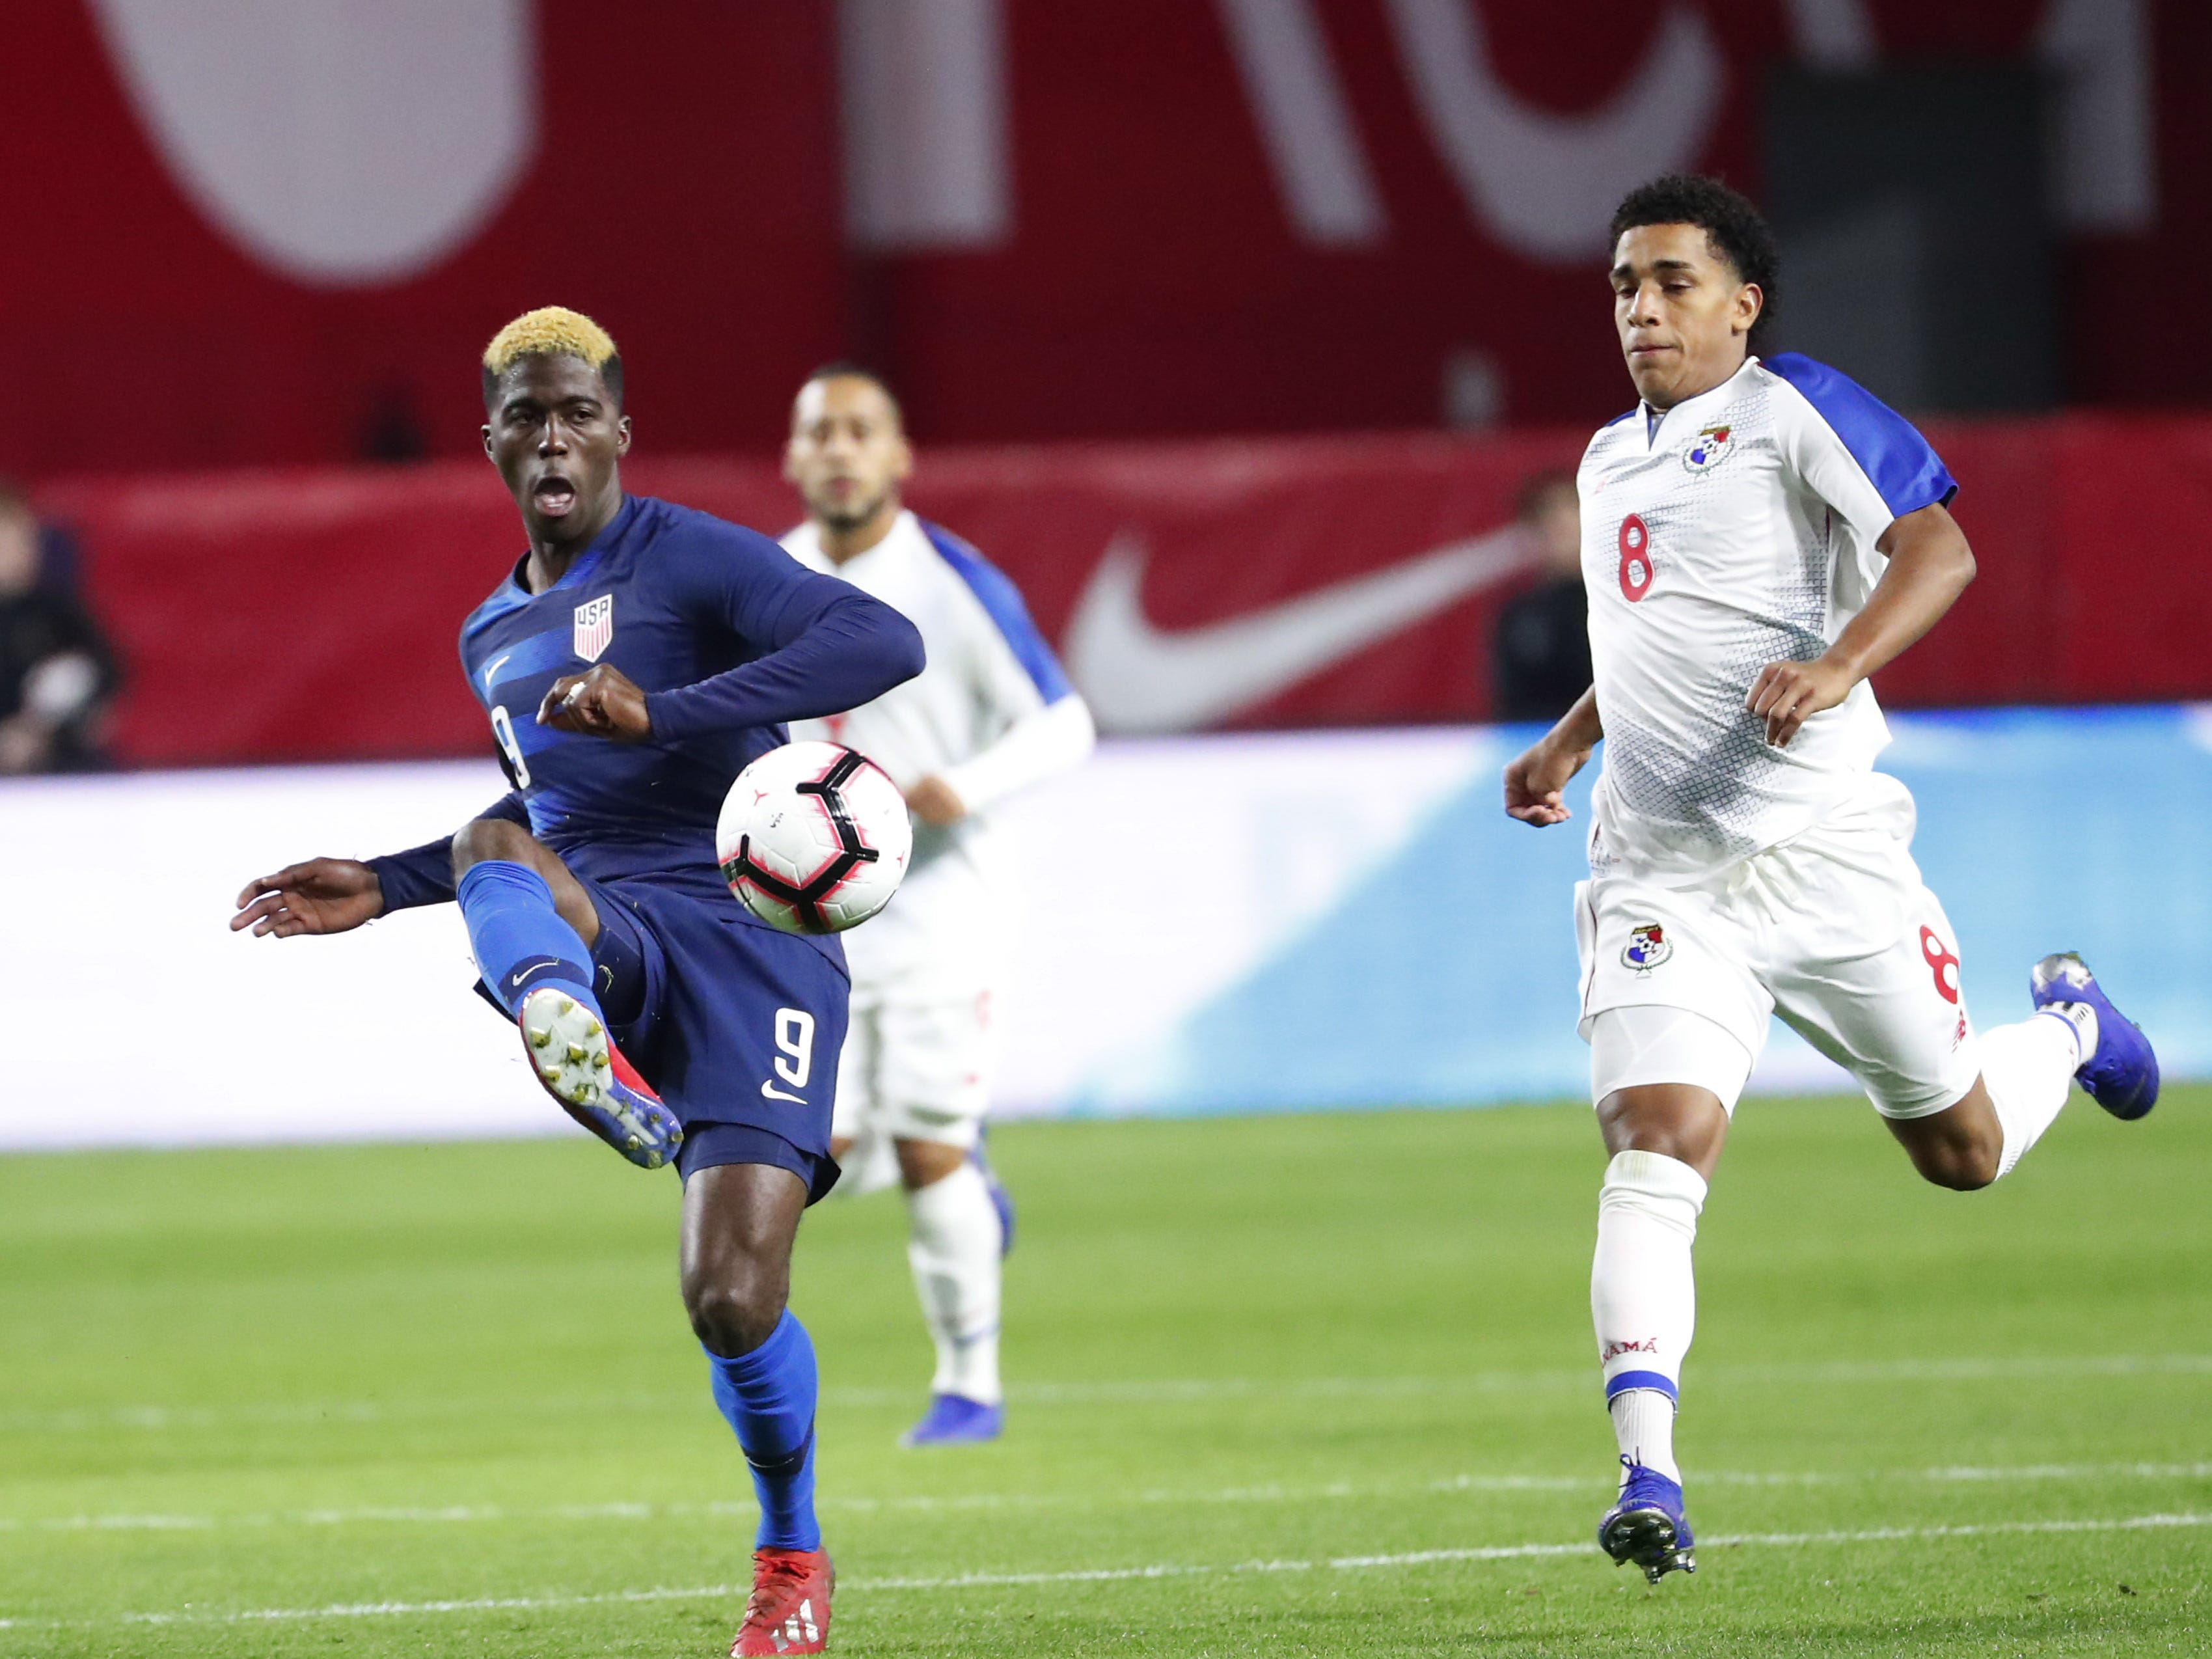 U.S. midfielder Gyasi Zardes (9) passes the ball while defended by Panama midfielder Adalberto Carrasquilla (8) during the first half of a friendly on Jan. 27, 2019 in Glendale, Ariz.